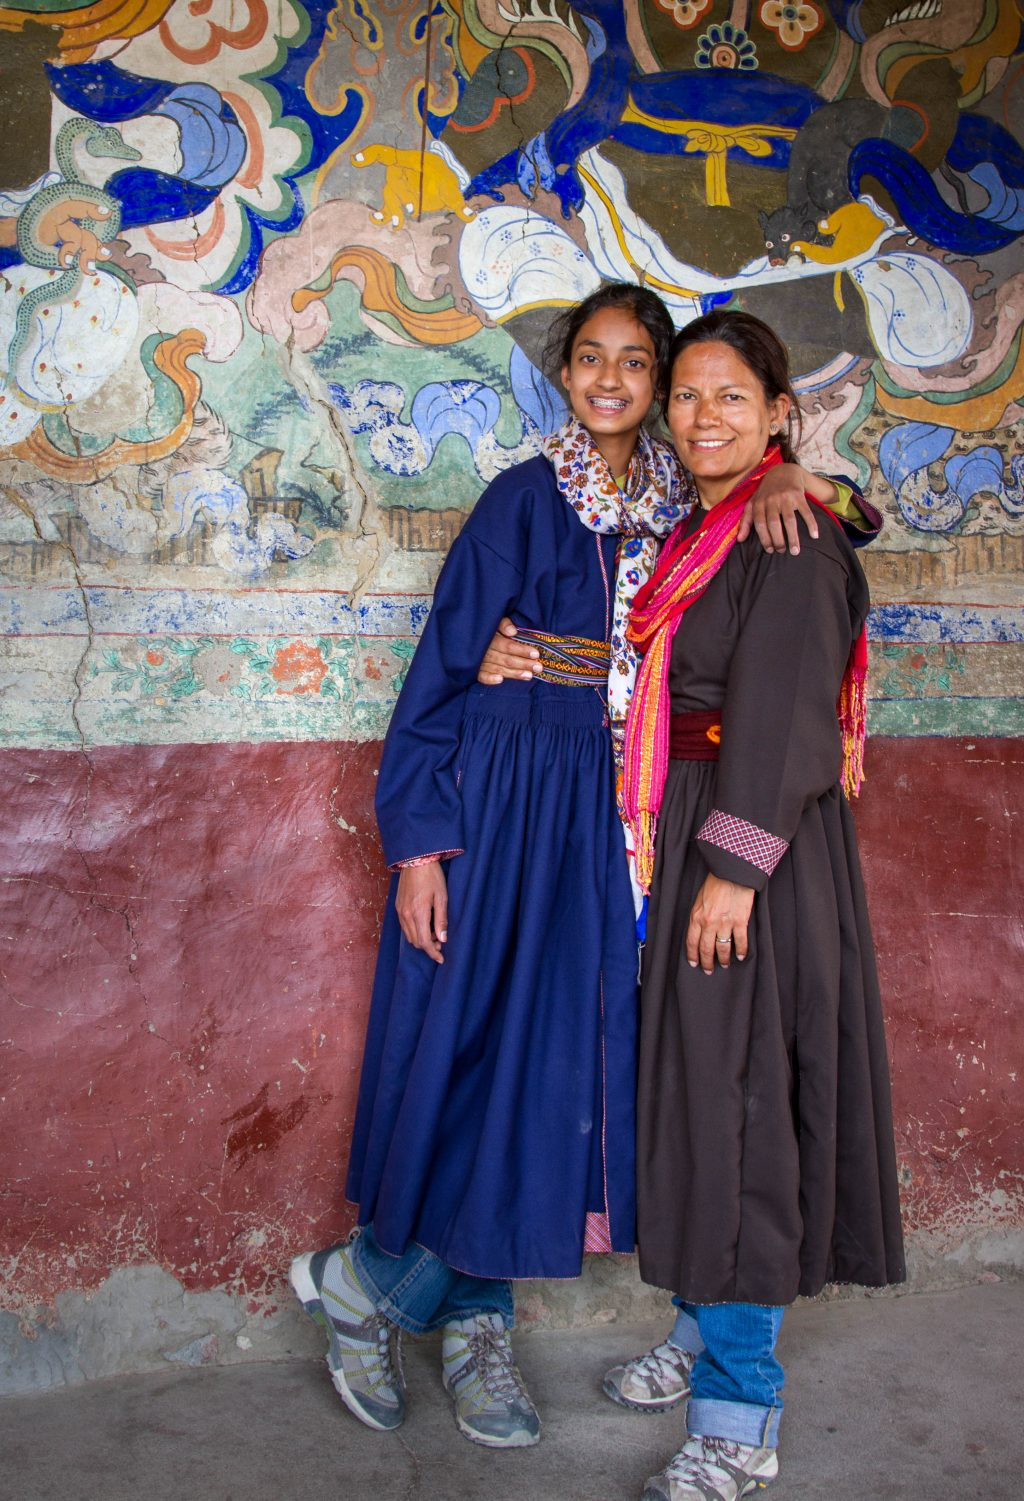 one girl and one woman in traditional ladakhi dress